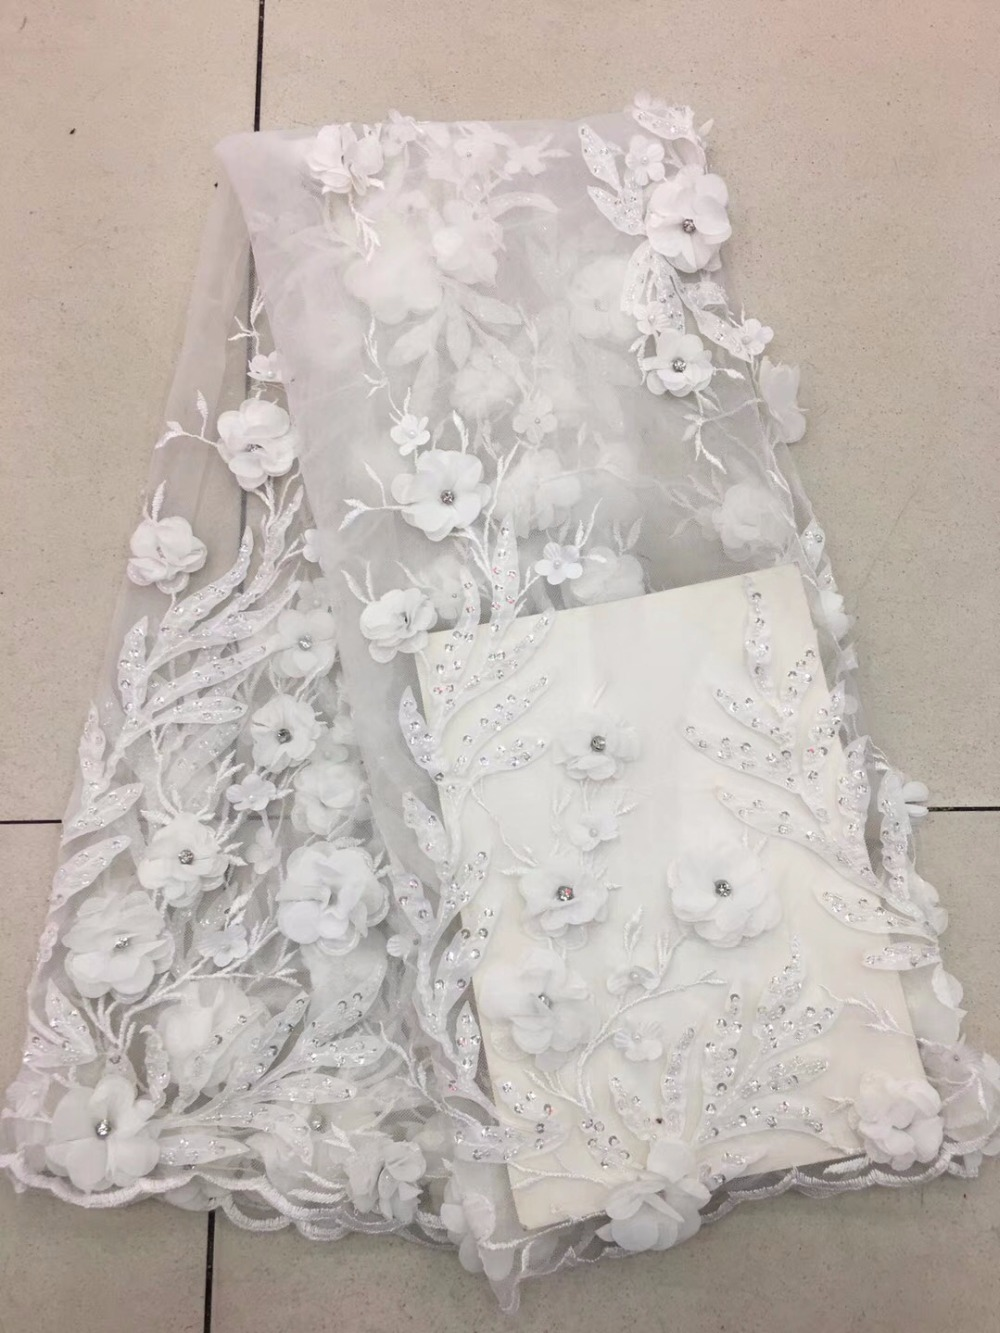 white Best Selling French Lace Fabric 2018 High Quality Lace Net African Lace Fabric With sequins Lace Fabrics For Weddingwhite Best Selling French Lace Fabric 2018 High Quality Lace Net African Lace Fabric With sequins Lace Fabrics For Wedding